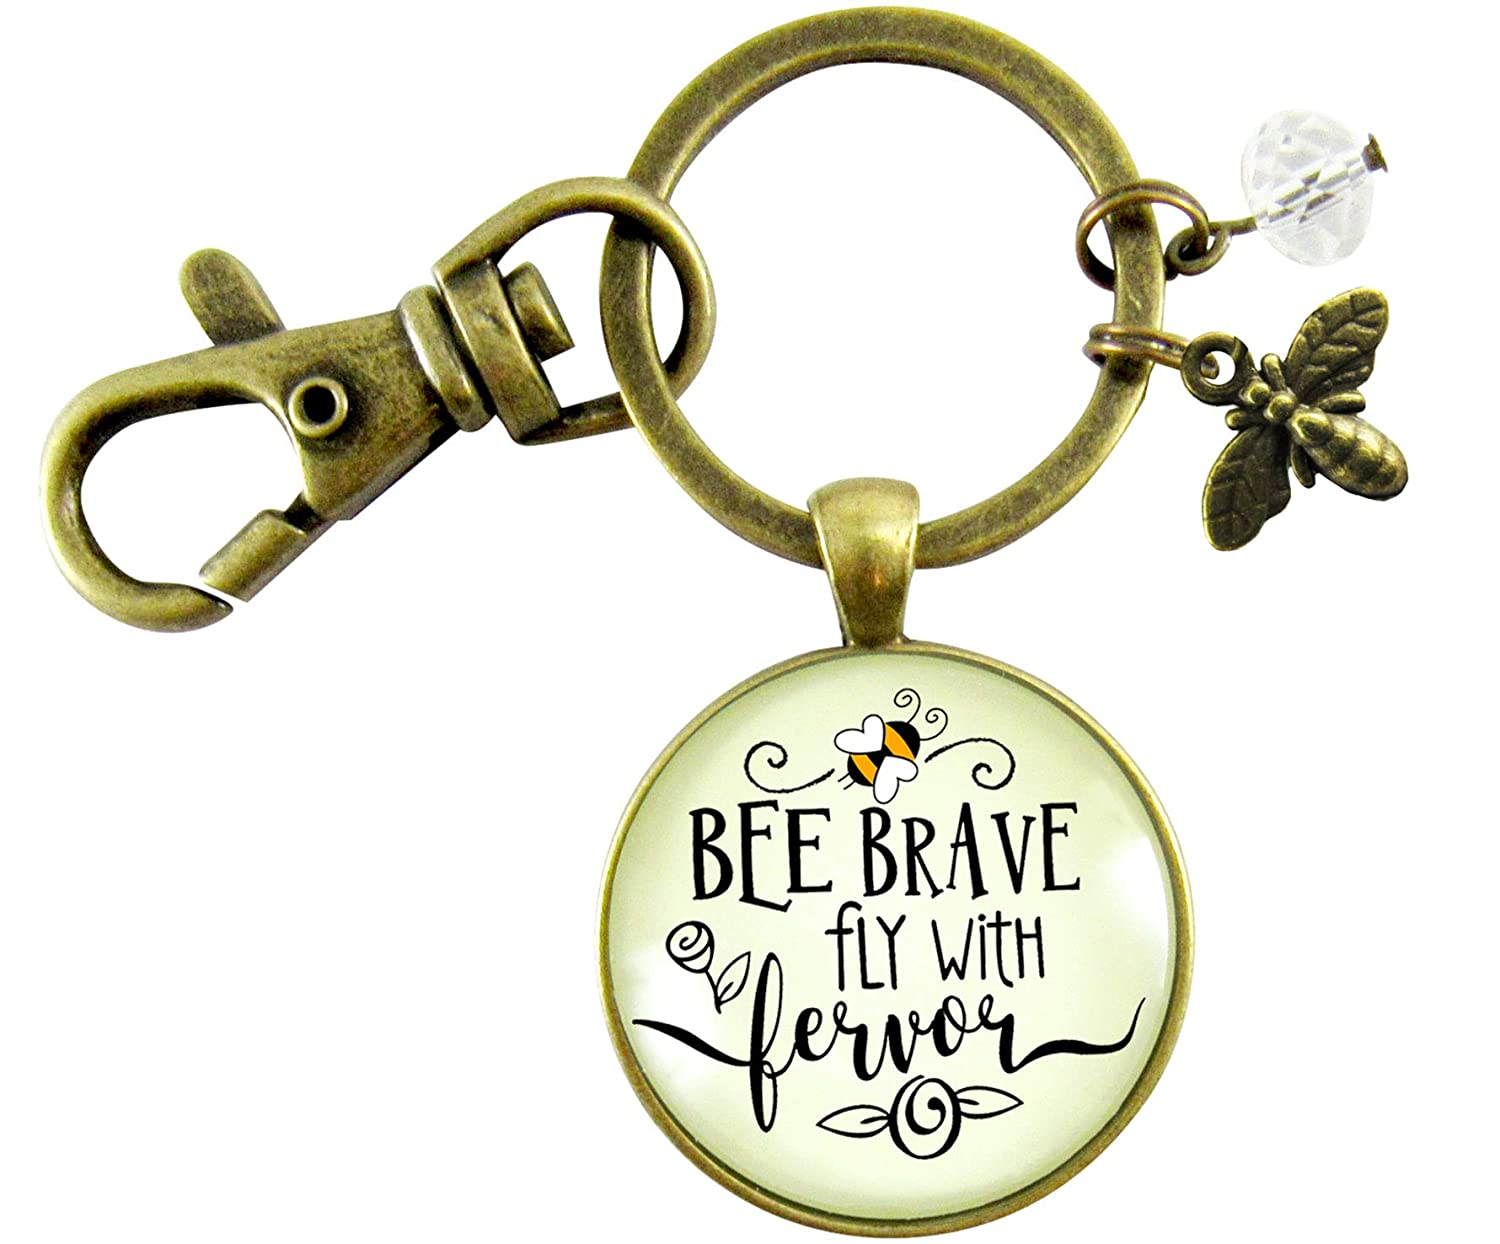 Bee Brave Keychain Fly With Fervor Fun Novelty Jewelry For Women Dainty Bumble Bee Charm Quote Pendant